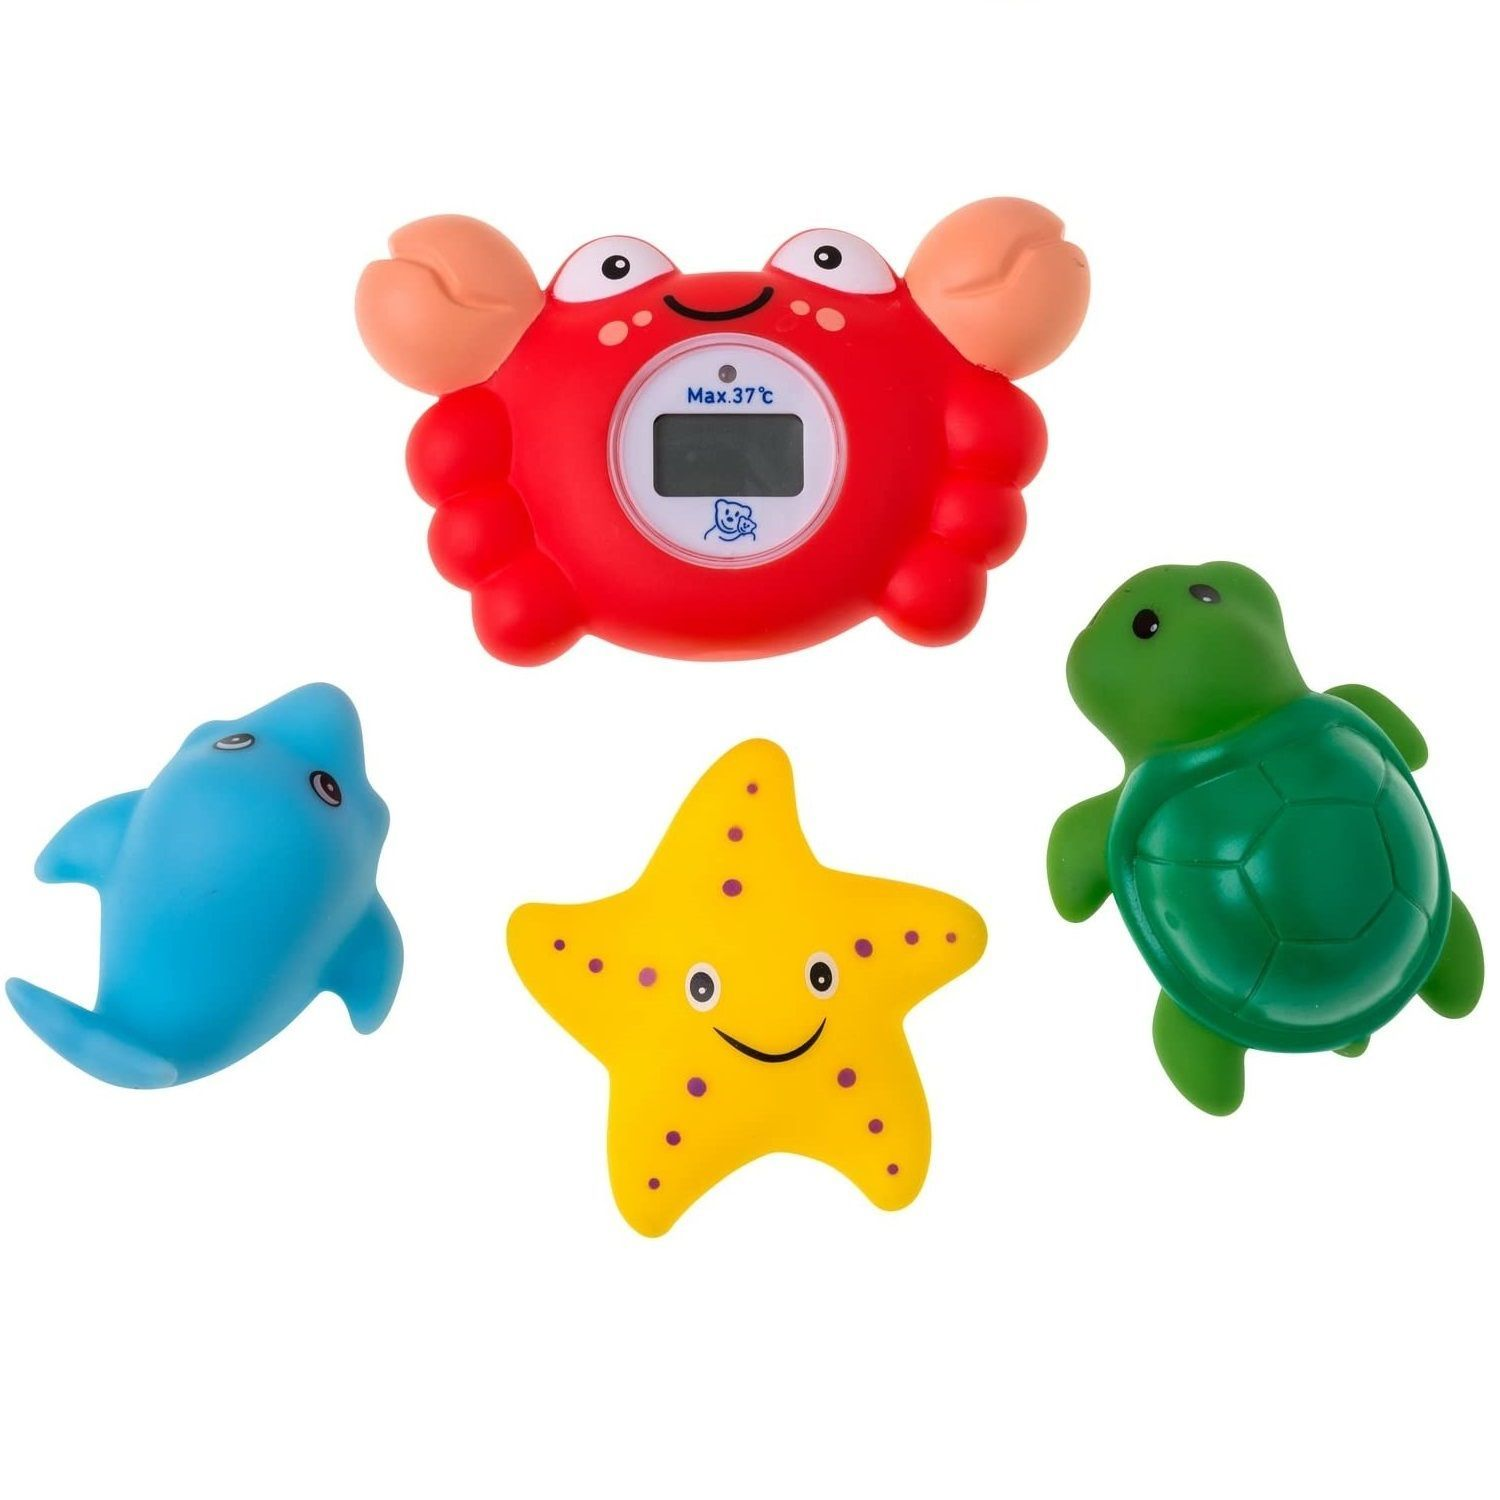 Rotho Babydesign Digital Bath and Room Crab Thermometer and Squirting Animals